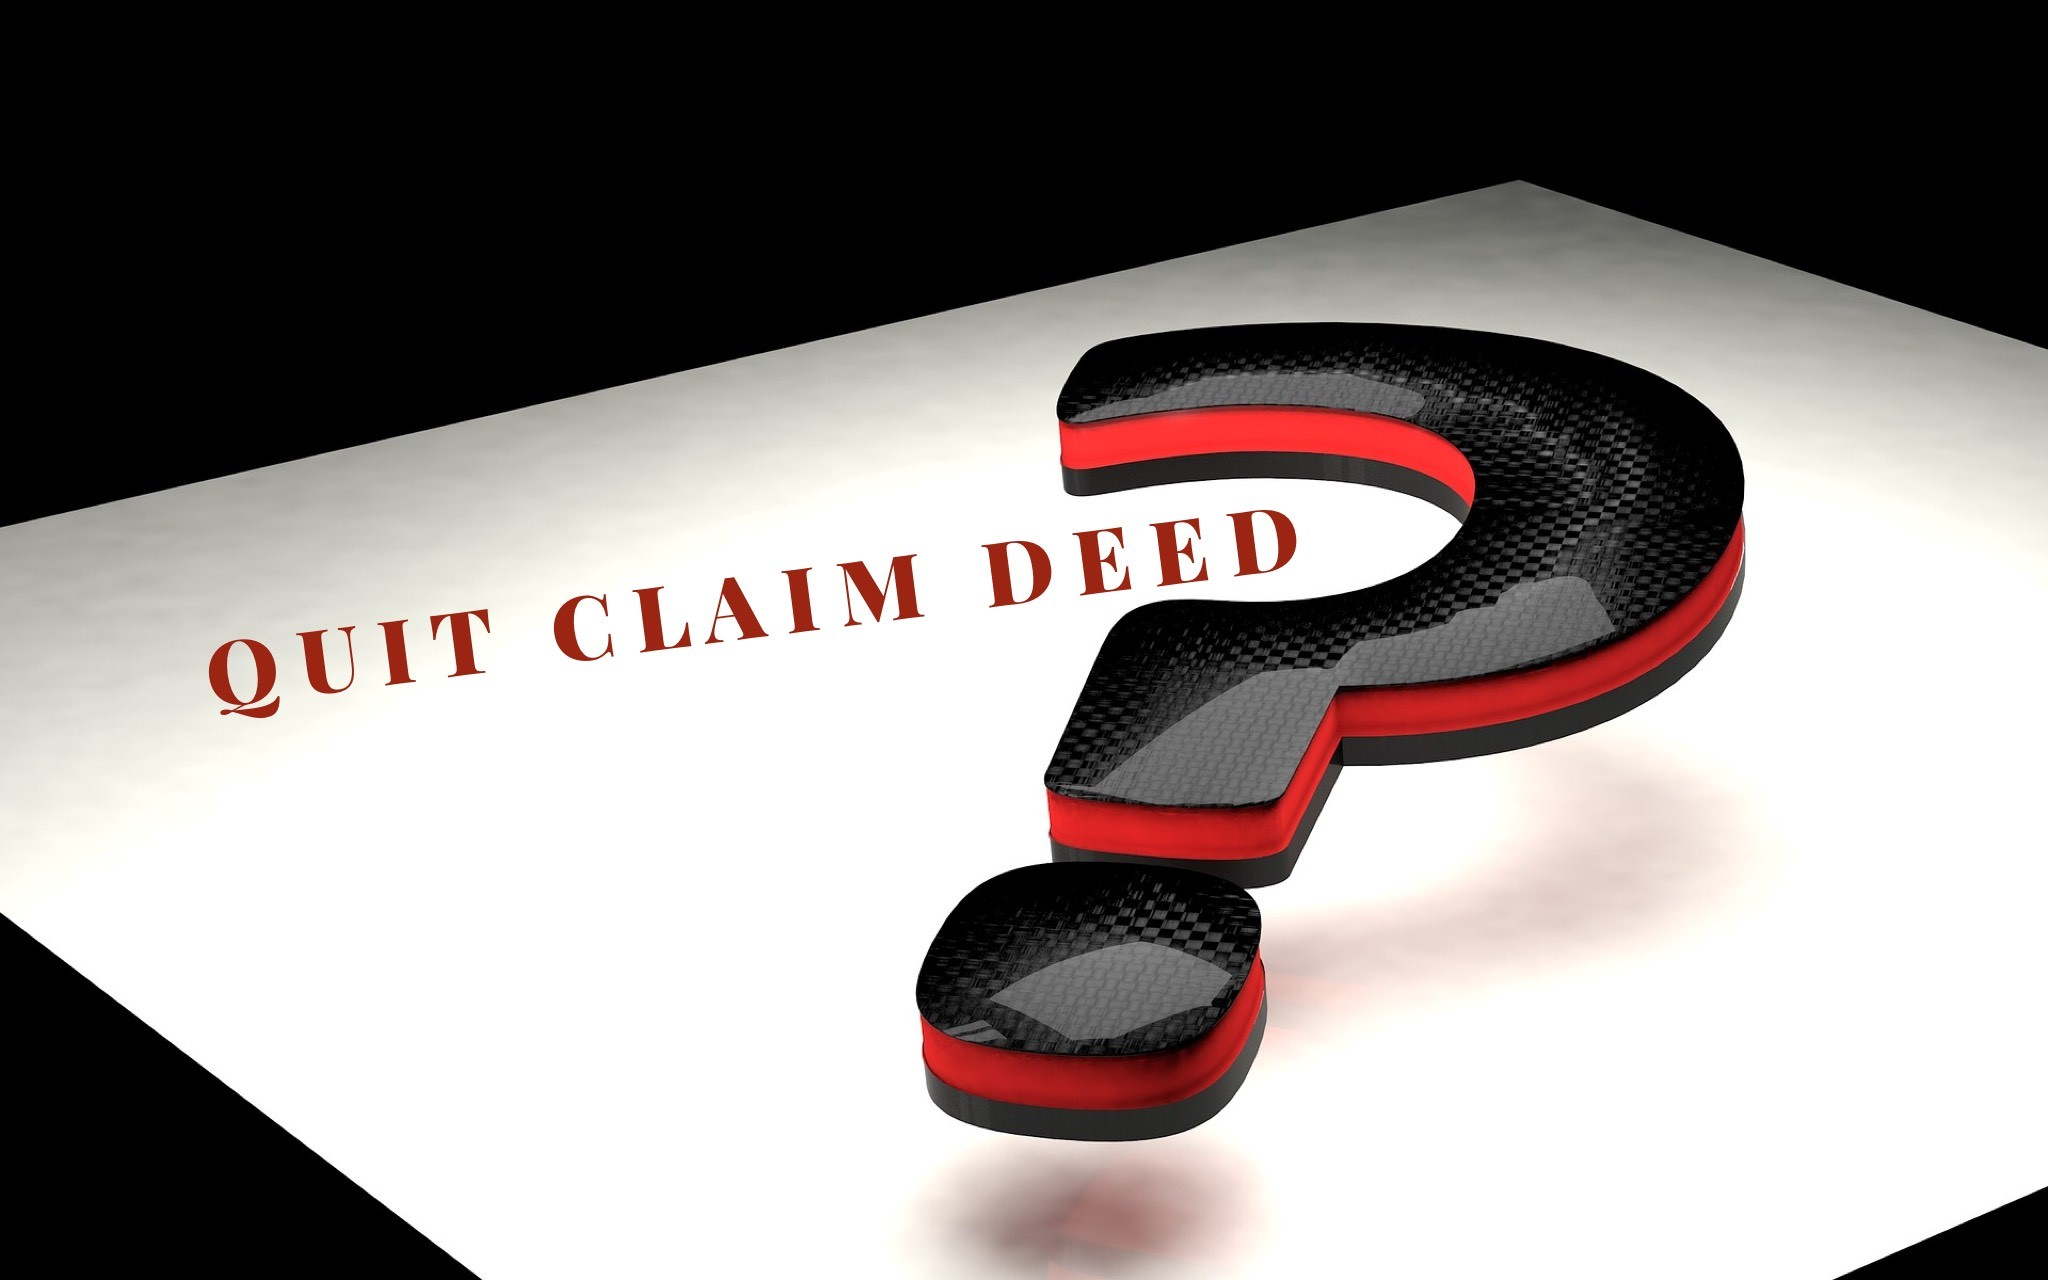 COULD A QUIT CLAIM DEED RUIN YOU?